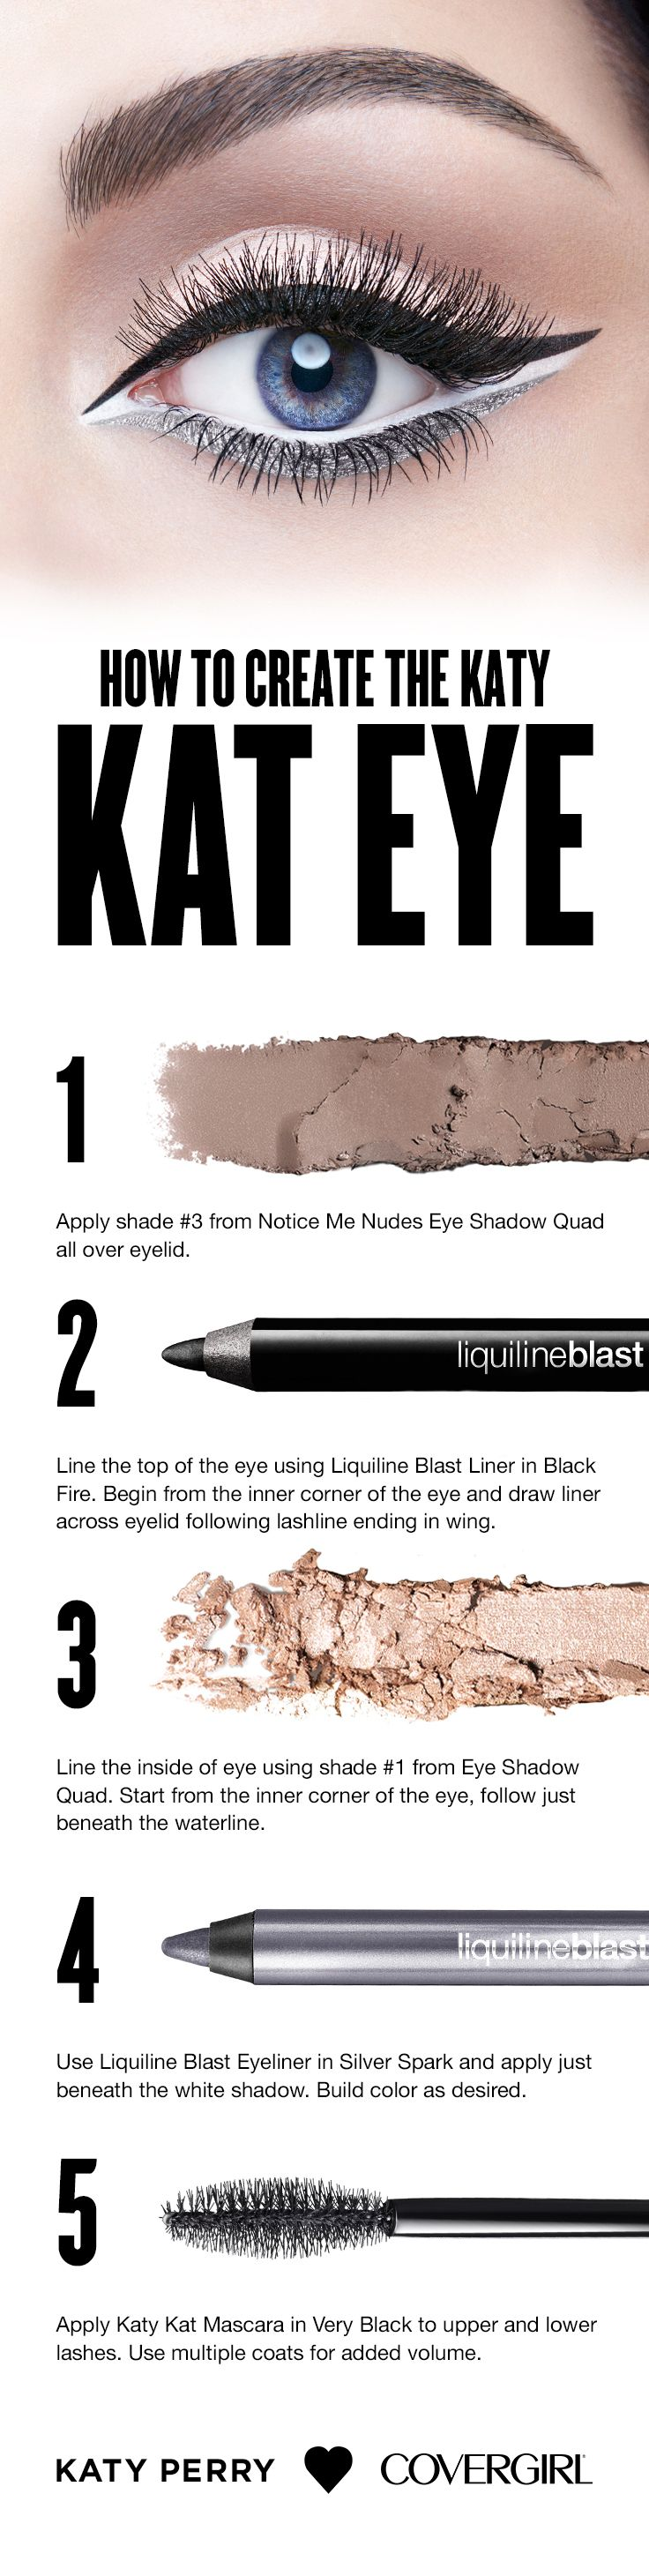 Use this step-by-step guide to create a purrrr-fect 360 Kat Eye look featuring COVERGIRL Kat Kat Mascara in Very Black, Liquiline Blast Eyeliner in Silver Spark, and the Eyeshadow Quad  in Notice Me Nudes (using shades 1& 3). Follow our easy, breezy steps and try Katy's look for yourself.